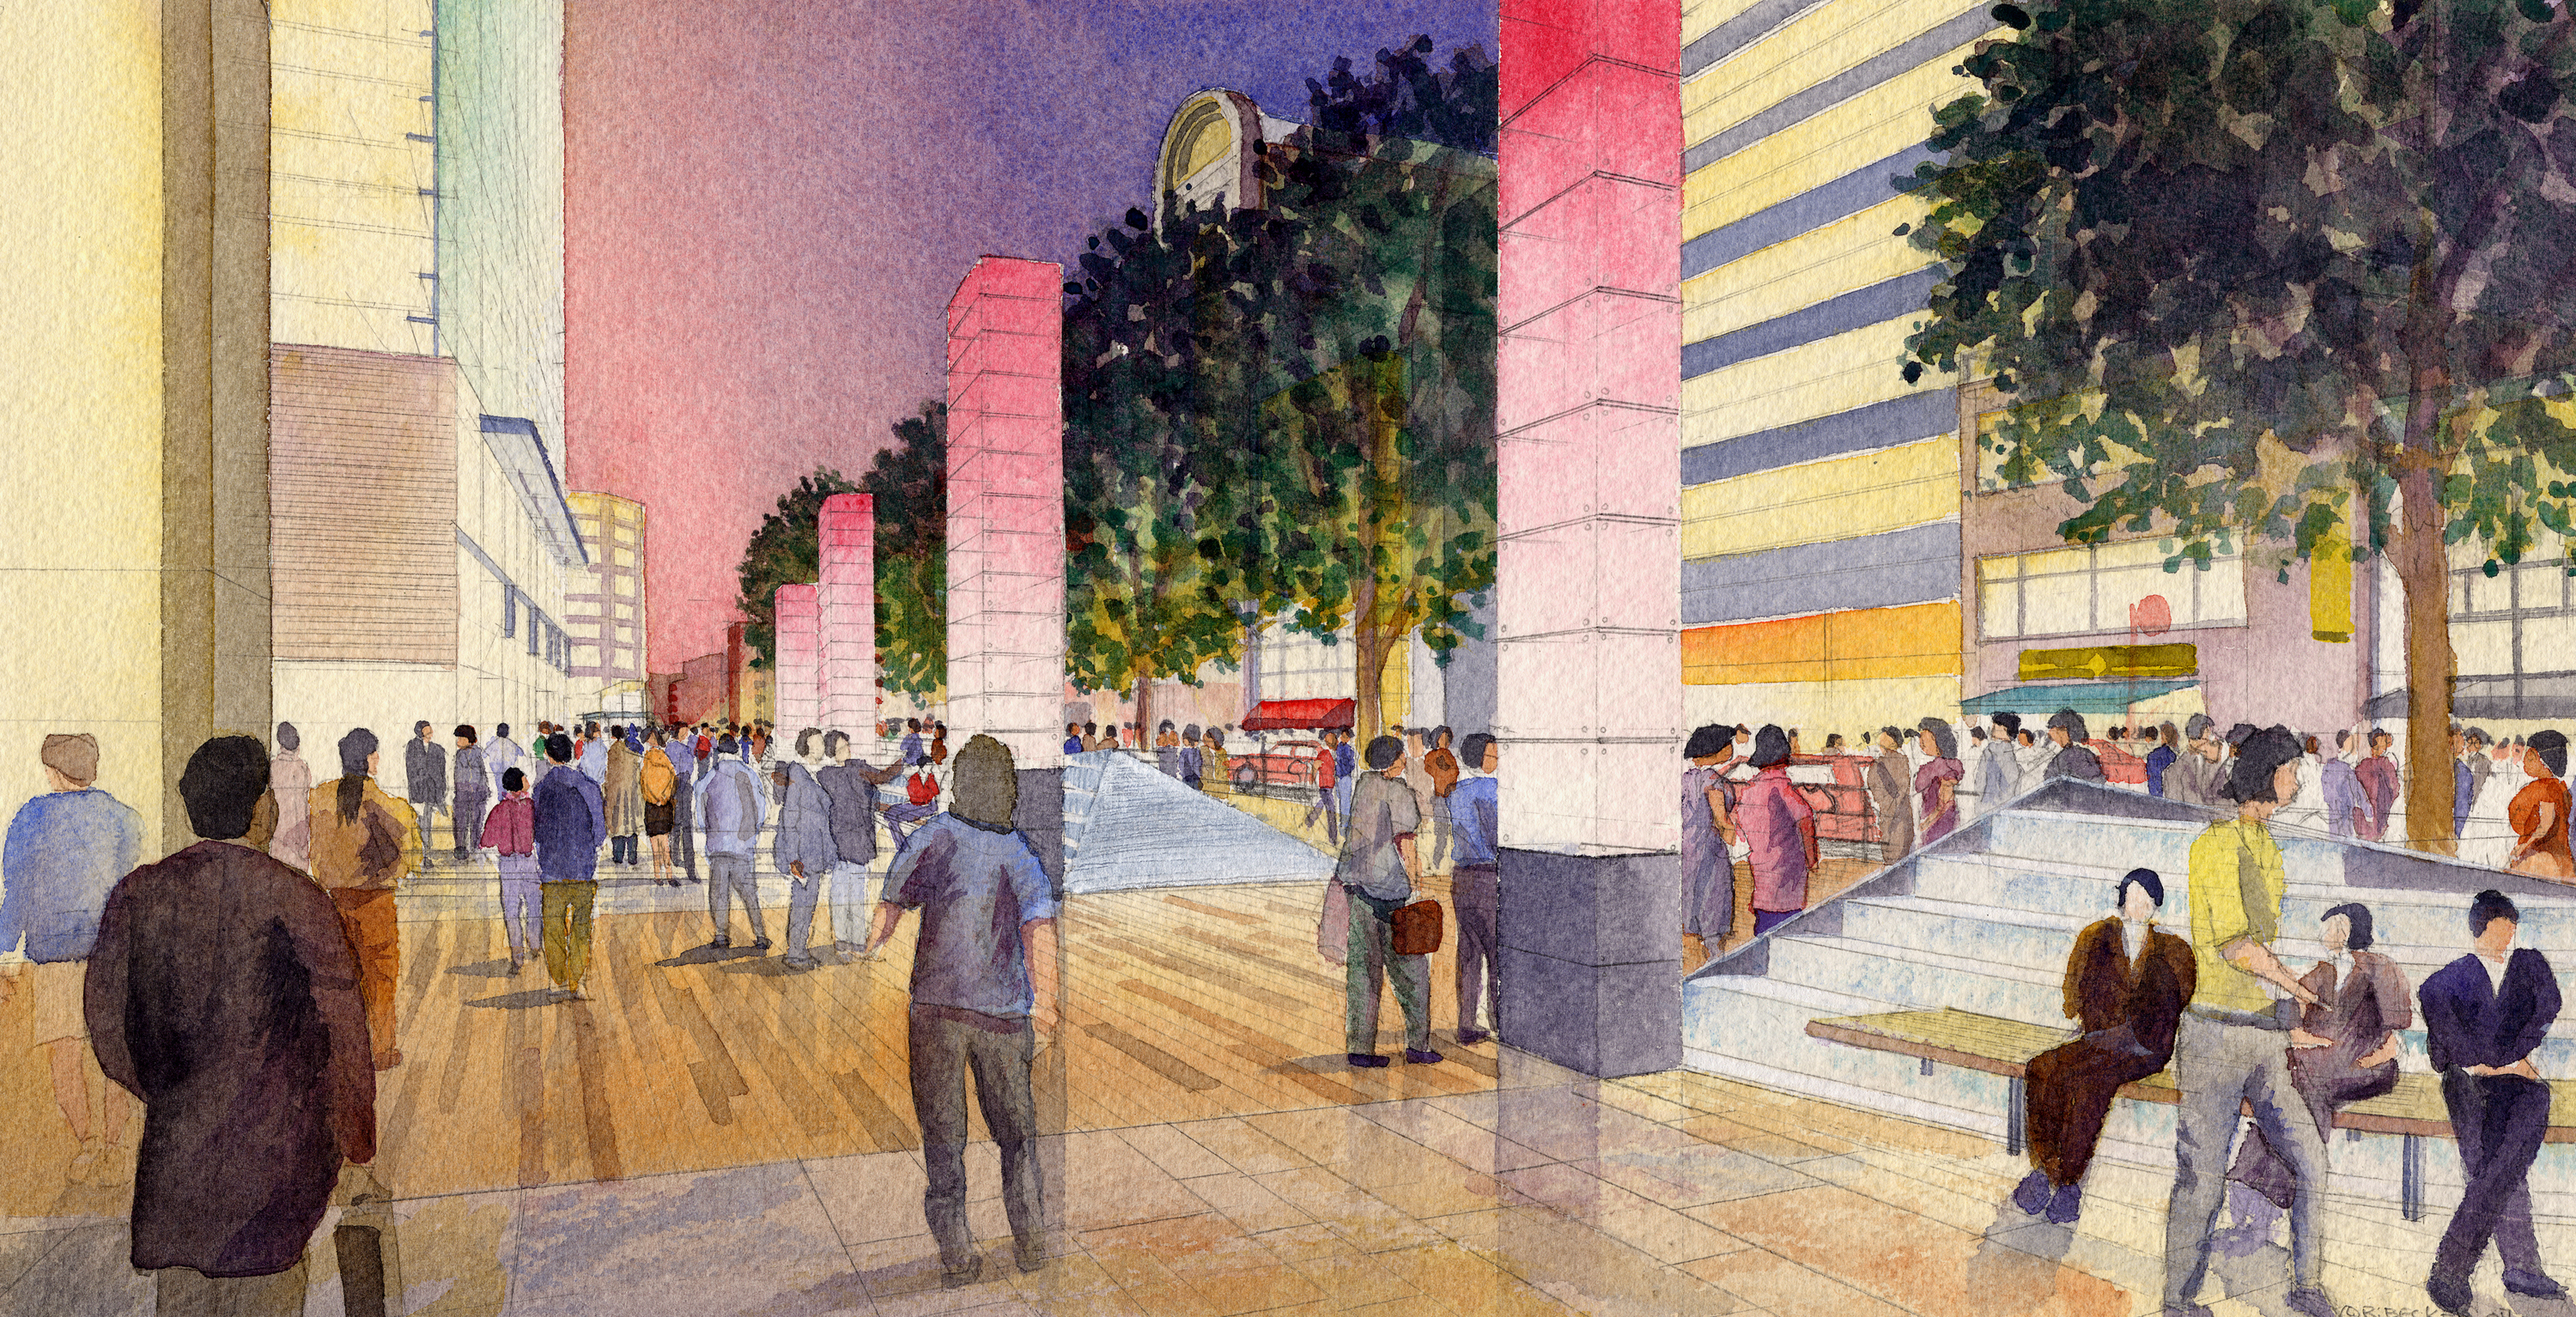 EDAW_Roppongi_Street_Architectural_Rendering_Watercolor